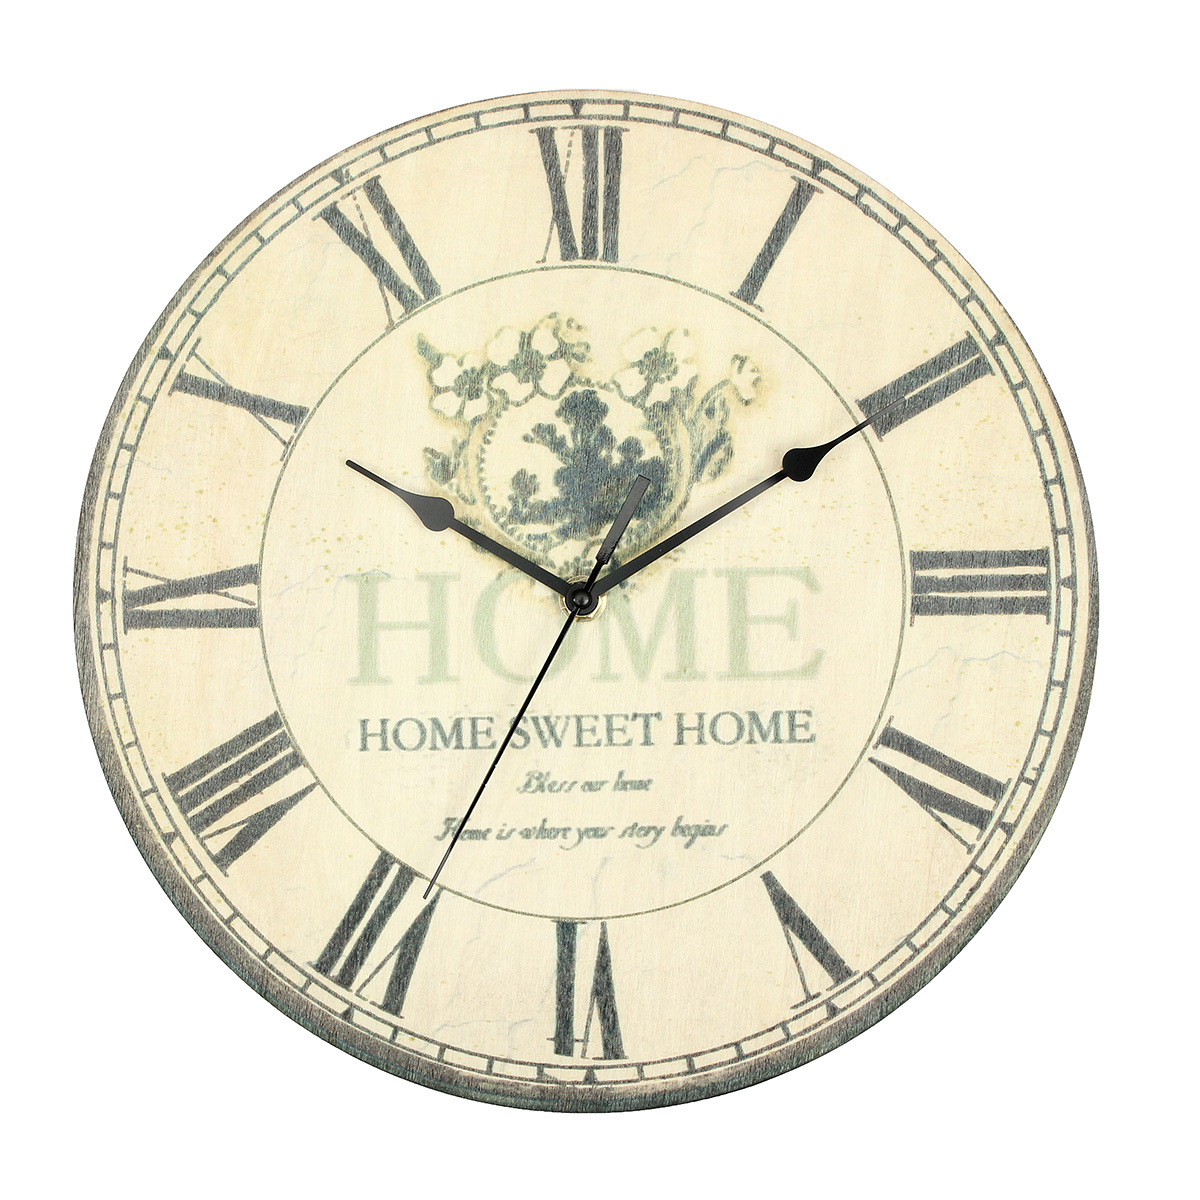 Retro Kitchen Wall Clocks Large Vintage Antique Rustic Shabby Chic Wall Clock Home